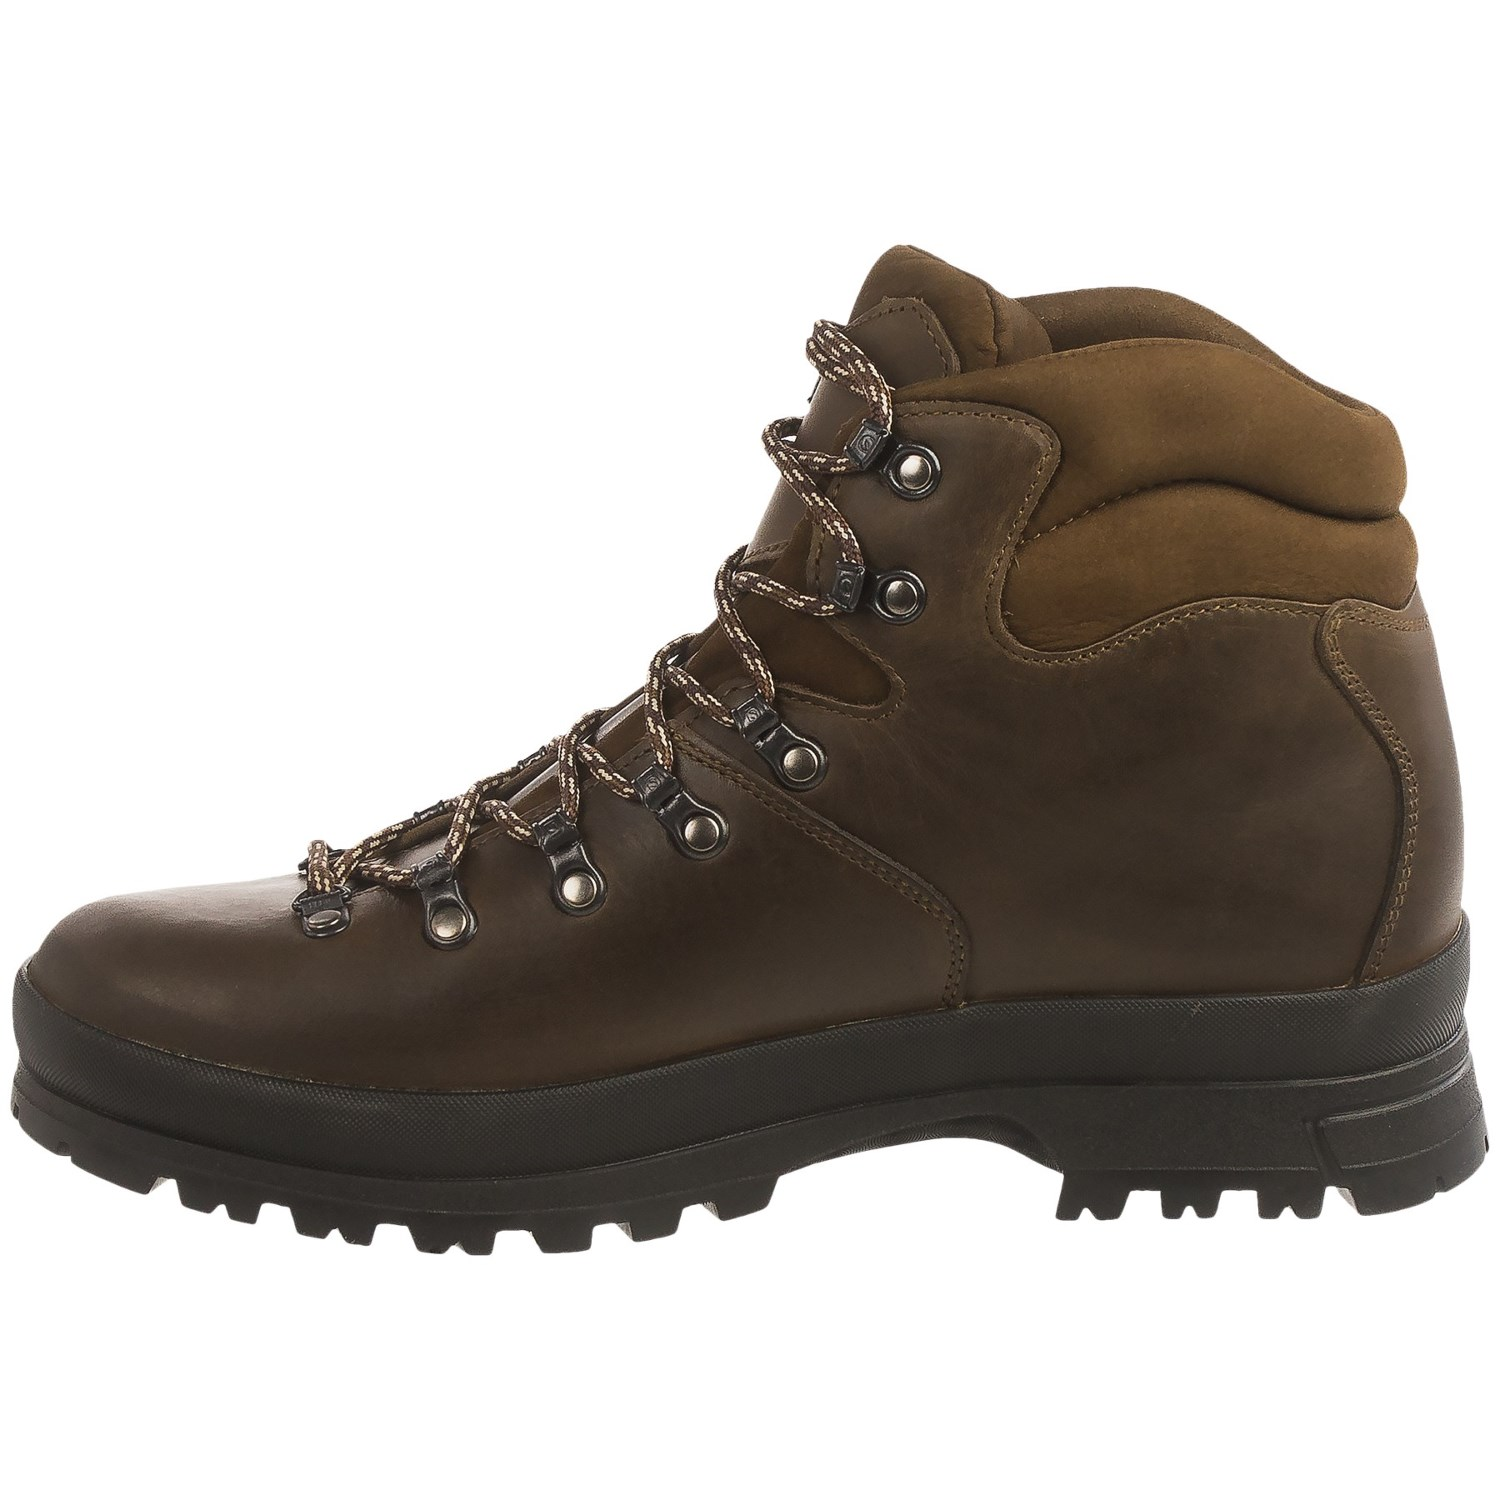 http://i.stpost.com/scarpa-ranger-gore-tex-hiking-boots-waterproof-leather-for-men~a~133da_3~1500.1.jpg